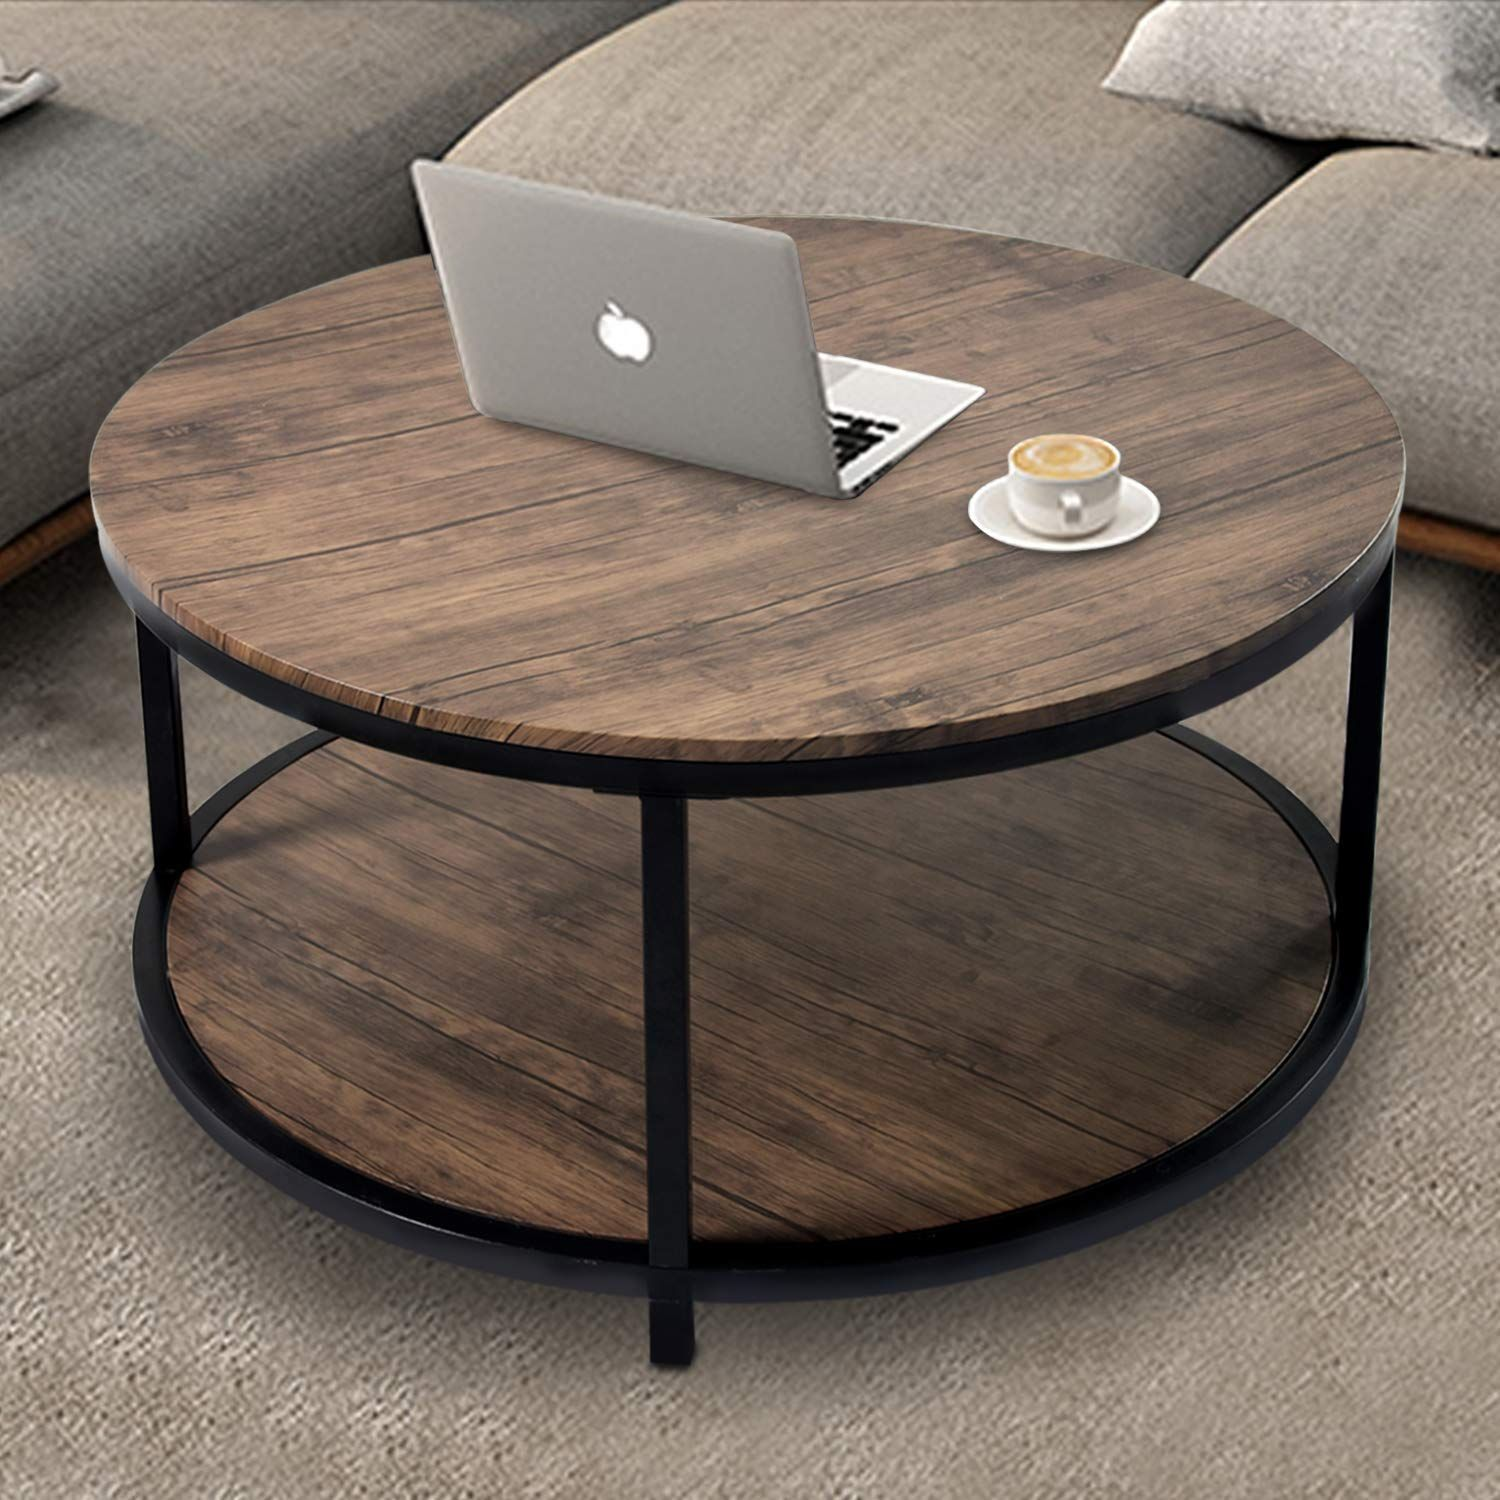 """36"""" Wood Round Coffee Table, Industrial Wood Top & Sturdy Metal Legs for Living Room Modern ..."""